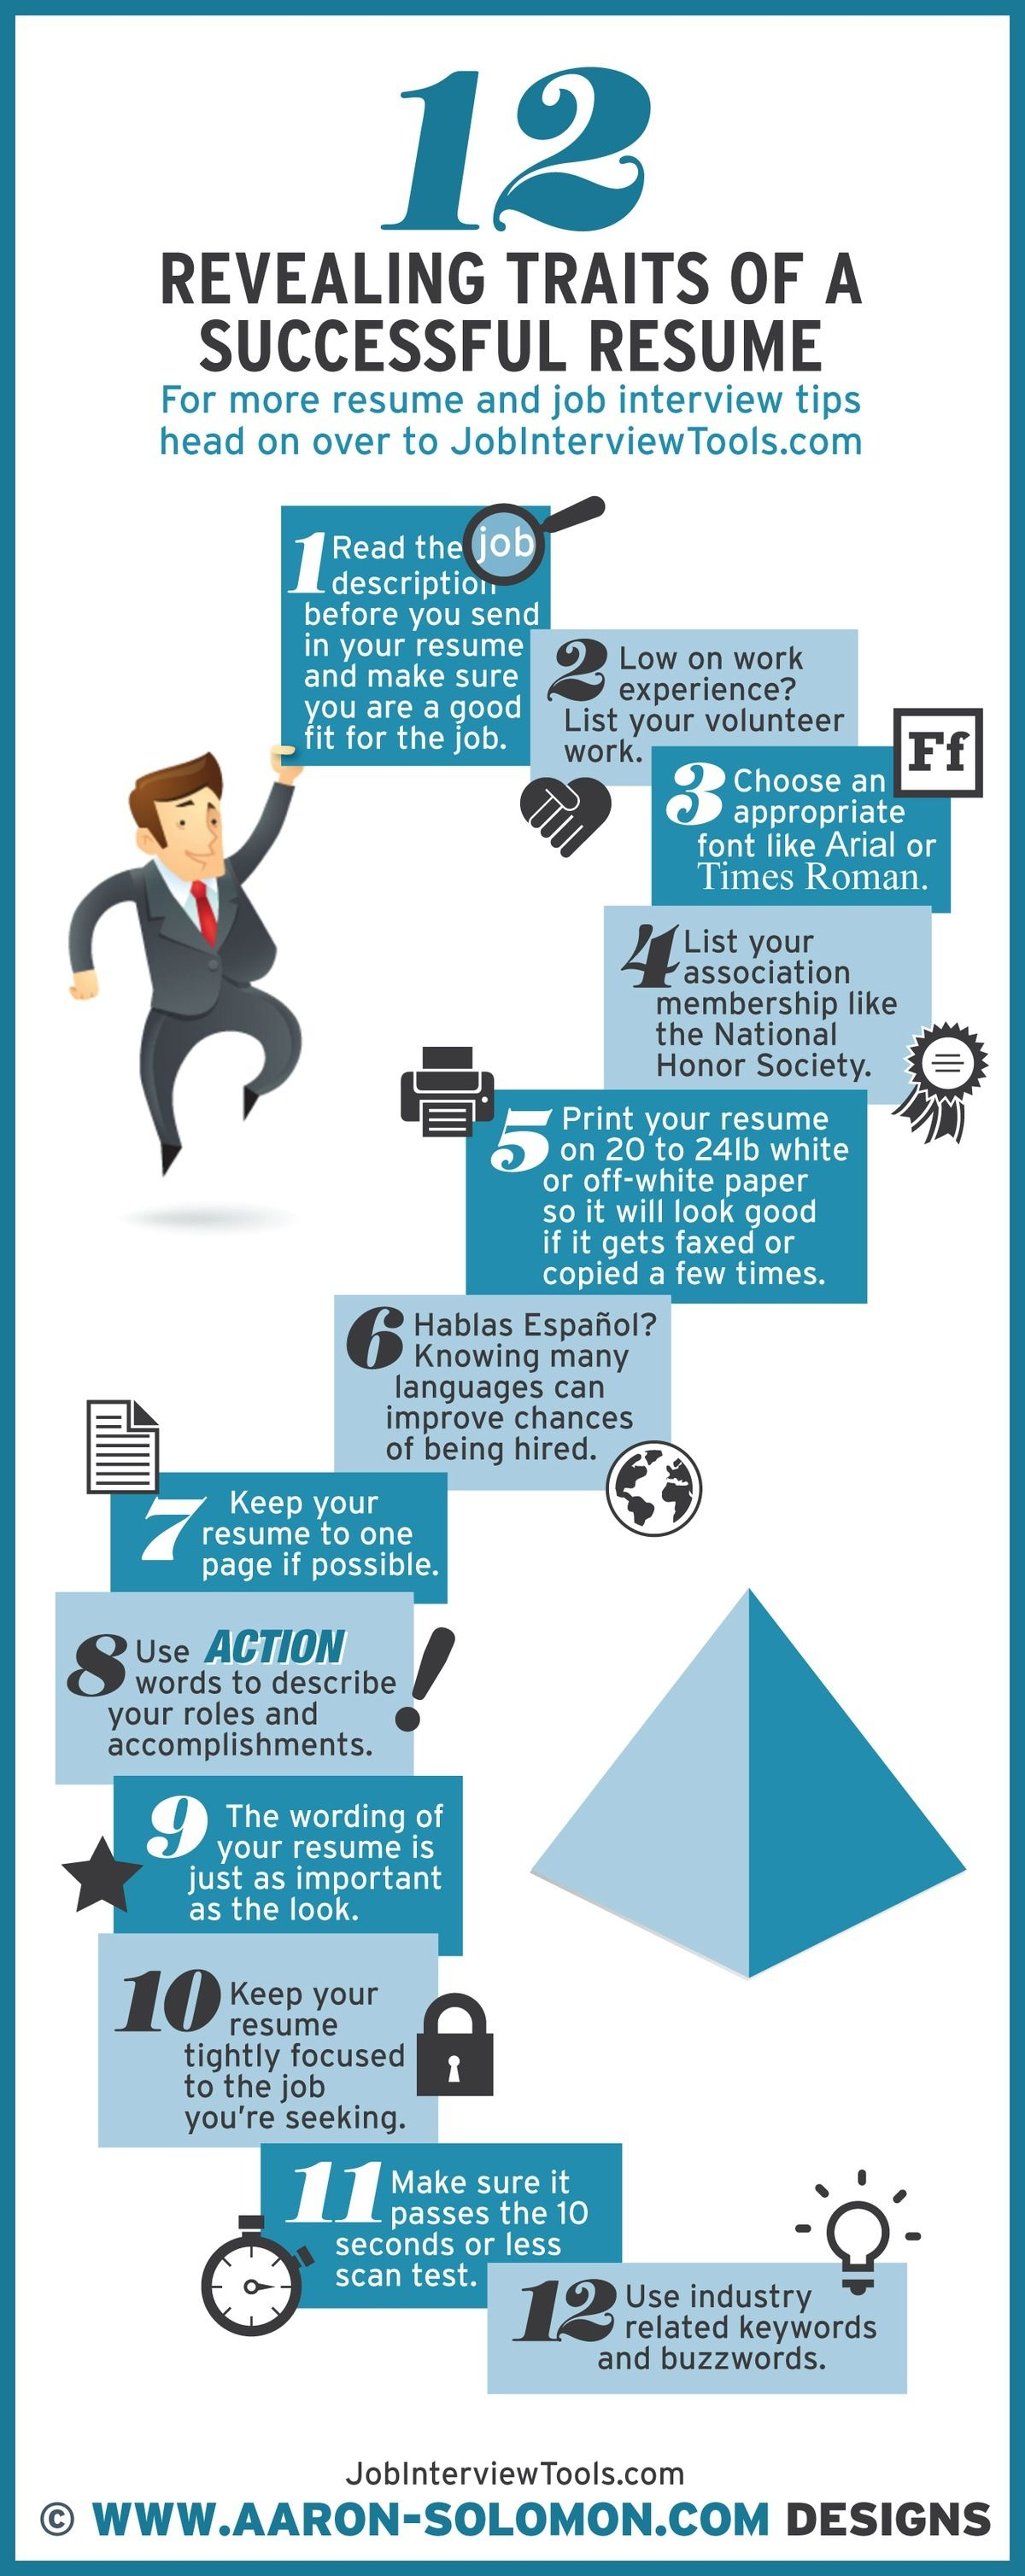 resume Resume Traits jobscoop would also add to qualify your experience for example infographic 12 revealing traits of a successful resume image description succ